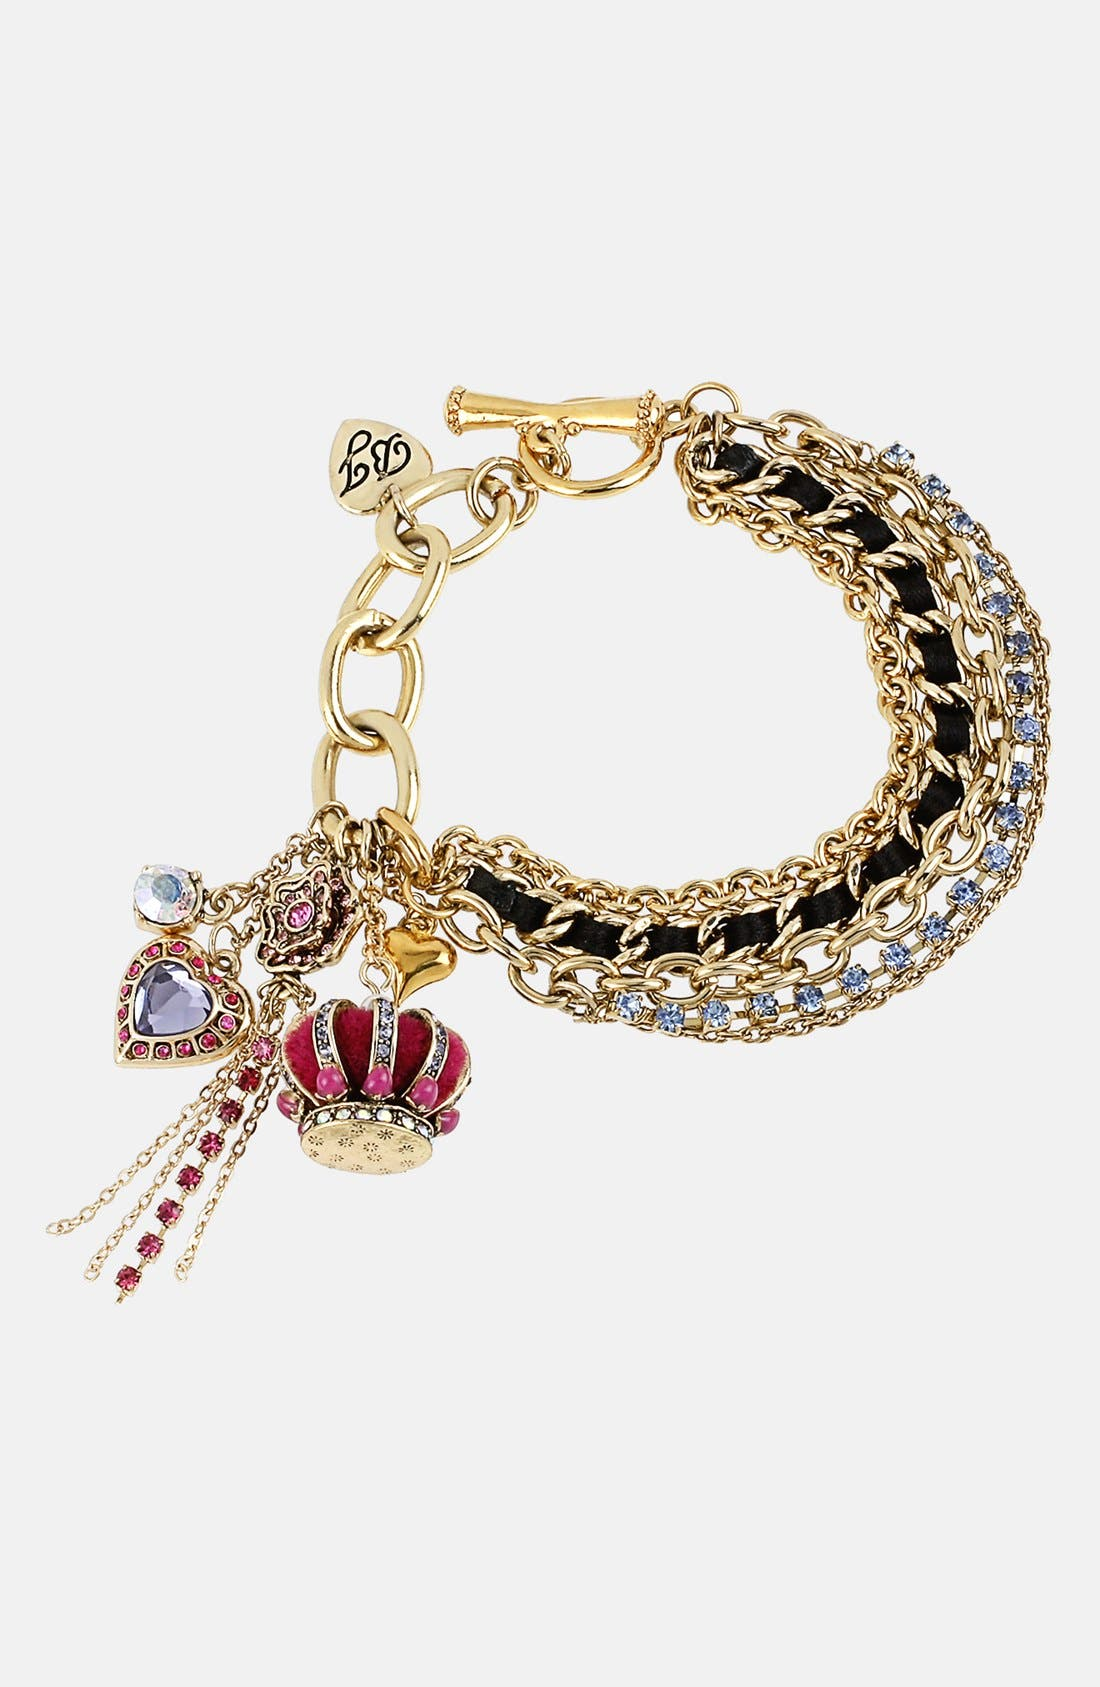 Main Image - Betsey Johnson 'Imperial' Toggle Charm Bracelet